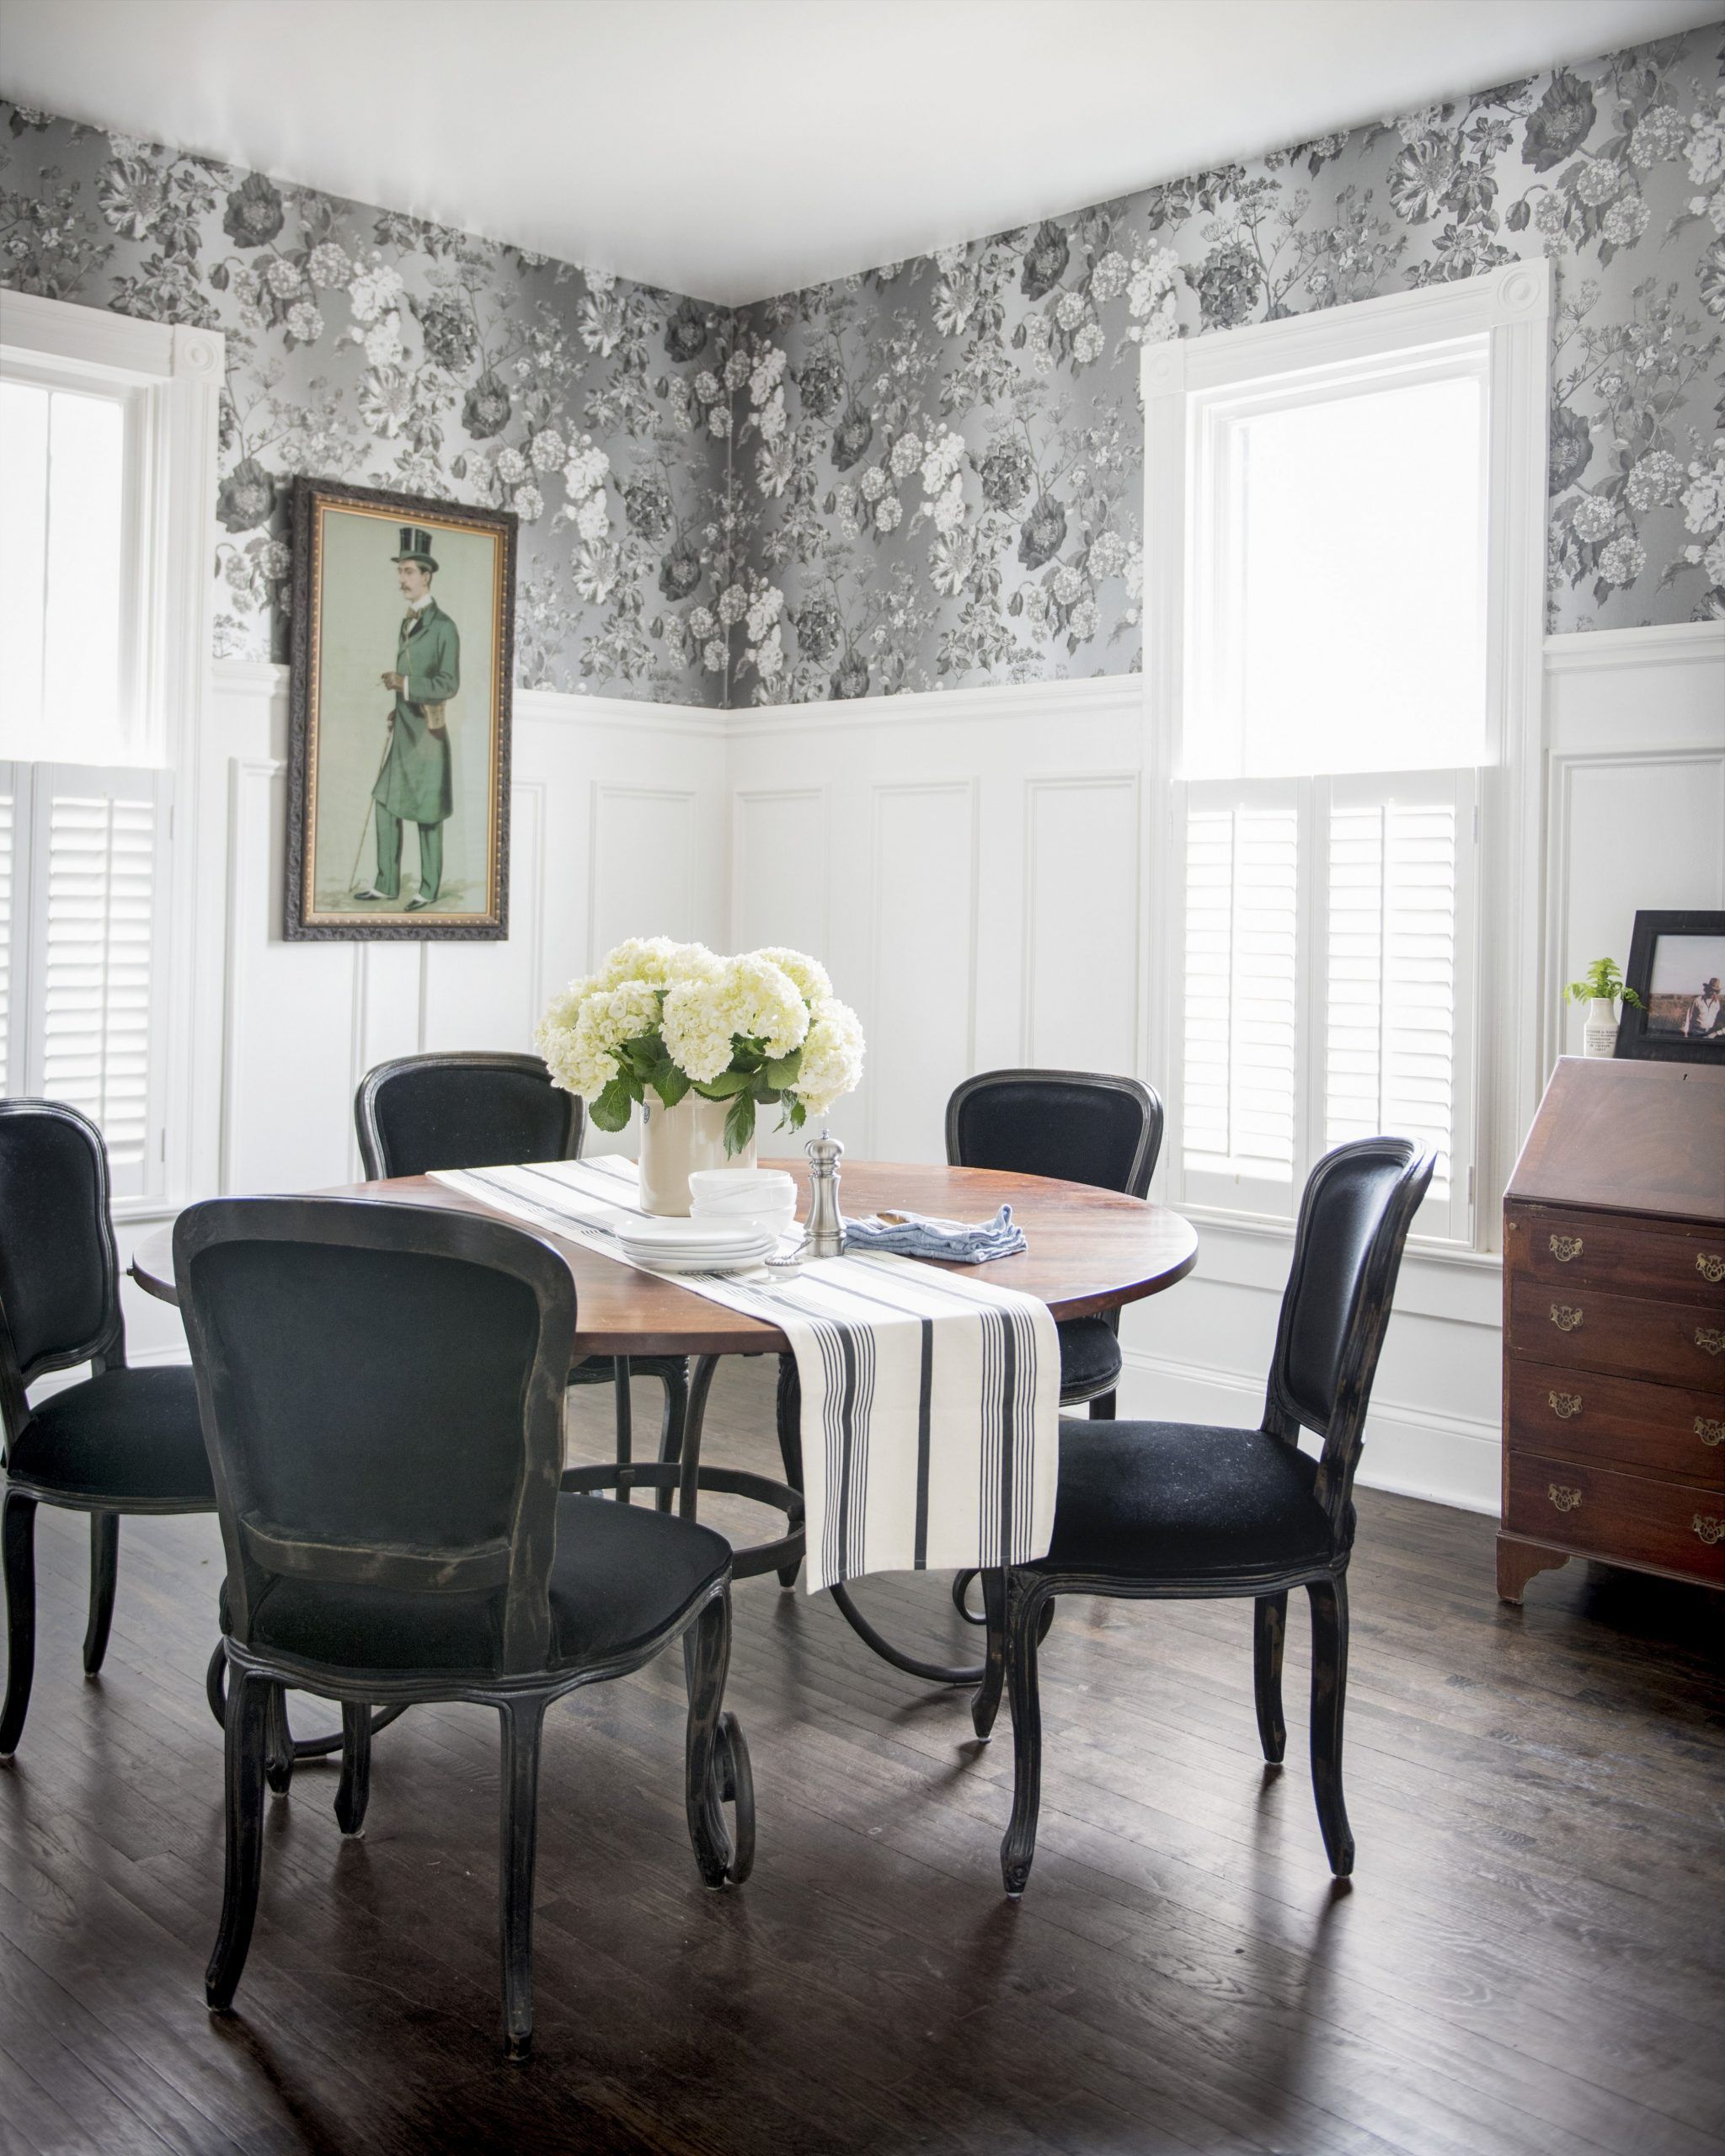 9 Best Dining Room Decorating Ideas - Pictures of Dining Room Decor - Dining Room Ideas Images